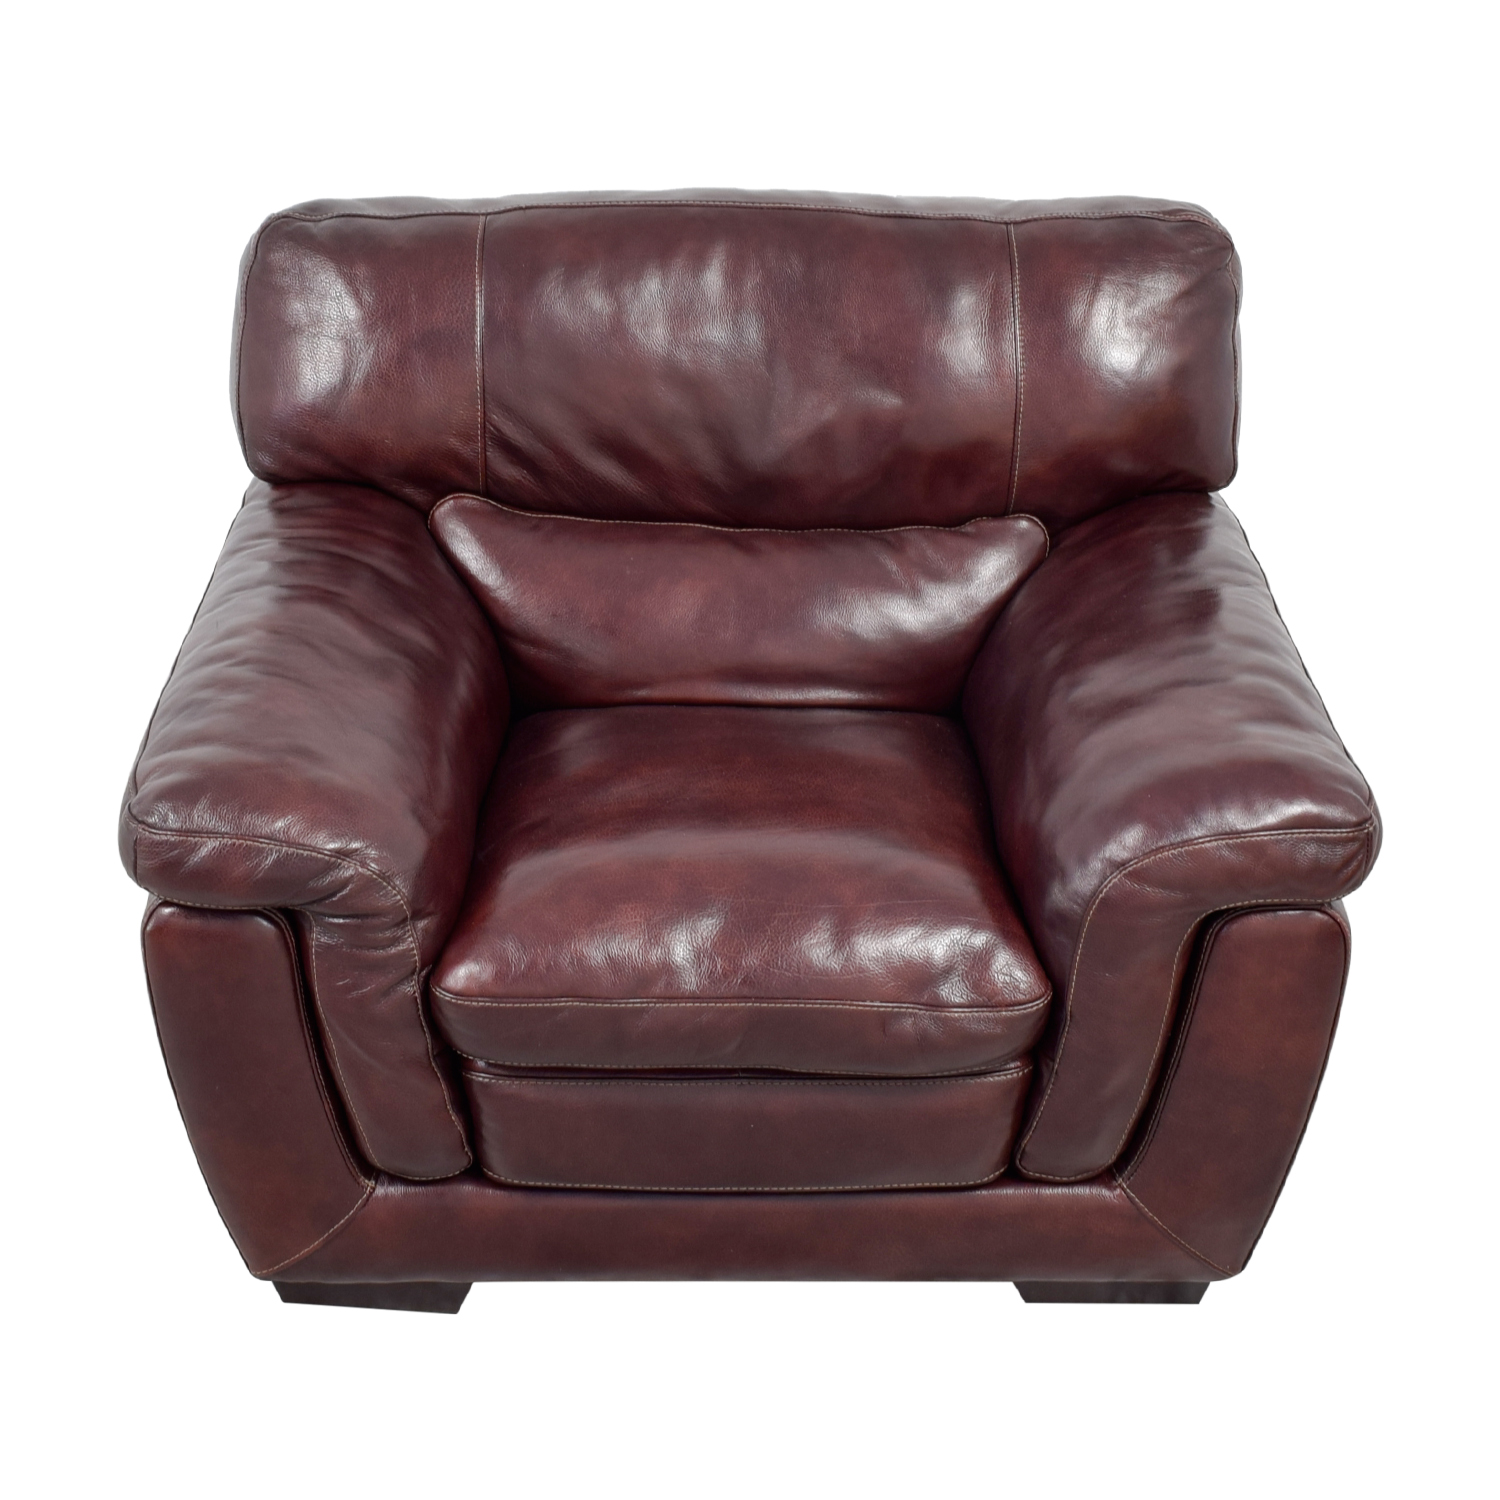 Raymour & Flanigan Raymour & Flanigan Burgundy Leather Accent Chair